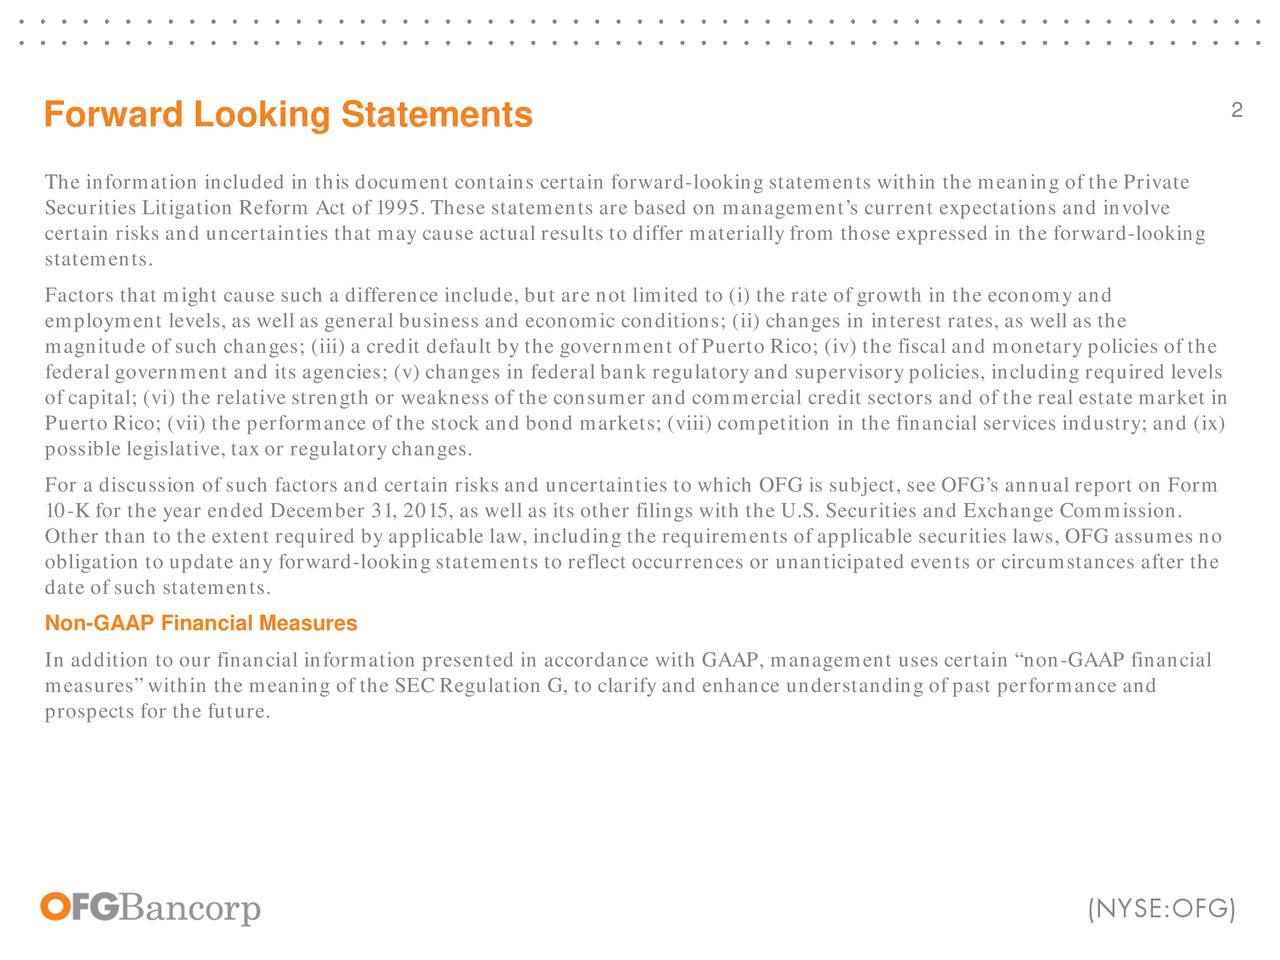 Forward Looking Statements The information included in this document contains certain forward-looking statements within the meaning of the Private Securities Litigation Reform Act of 1995. These statements are based on managements current expectations and involve certain risks and uncertainties that may cause actual results to differ materially from those expressed in the fo-looking statements. Factors that might cause such a difference include, but are not limited to (i) the rate of growth in the economy and employment levels, as well as general business and economic conditions; (ii) changes in interest rates, as well as the magnitude of such changes; (iii) a credit default by the government of Puerto Rico; (iv) the fiscal and monetary policies ofthe federal government and its agencies; (v) changes in federal bank regulatory and supervisory policies, including required levels of capital; (vi) the relative strength or weakness of the consumer and commercial credit sectors and of the real estate manket i Puerto Rico; (vii) the performance of the stock and bond markets; (viii) competition in the financial services industry; a)d (ix possible legislative, tax or regulatory changes. For a discussion of such factors and certain risks and uncertainties to which OFG is subject, see OFGs annual report on Form 10-K for the year ended December 31, 2015, as well as its other filings with the U.S. Securities and Exchange Commission. Other than to the extent required by applicable law, including the requirements of applicable securities laws, OFG assumes no obligation to update any forward-looking statements to reflect occurrences or unanticipated events or circumstances after the date of such statements. Non-GAAP Financial Measures In addition to our financial information presented in accordance with GAAP, management uses certain non-GAAP financial measures within the meaning of the SEC Regulation G, to clarify and enhance understanding of past performance and prospects for the 